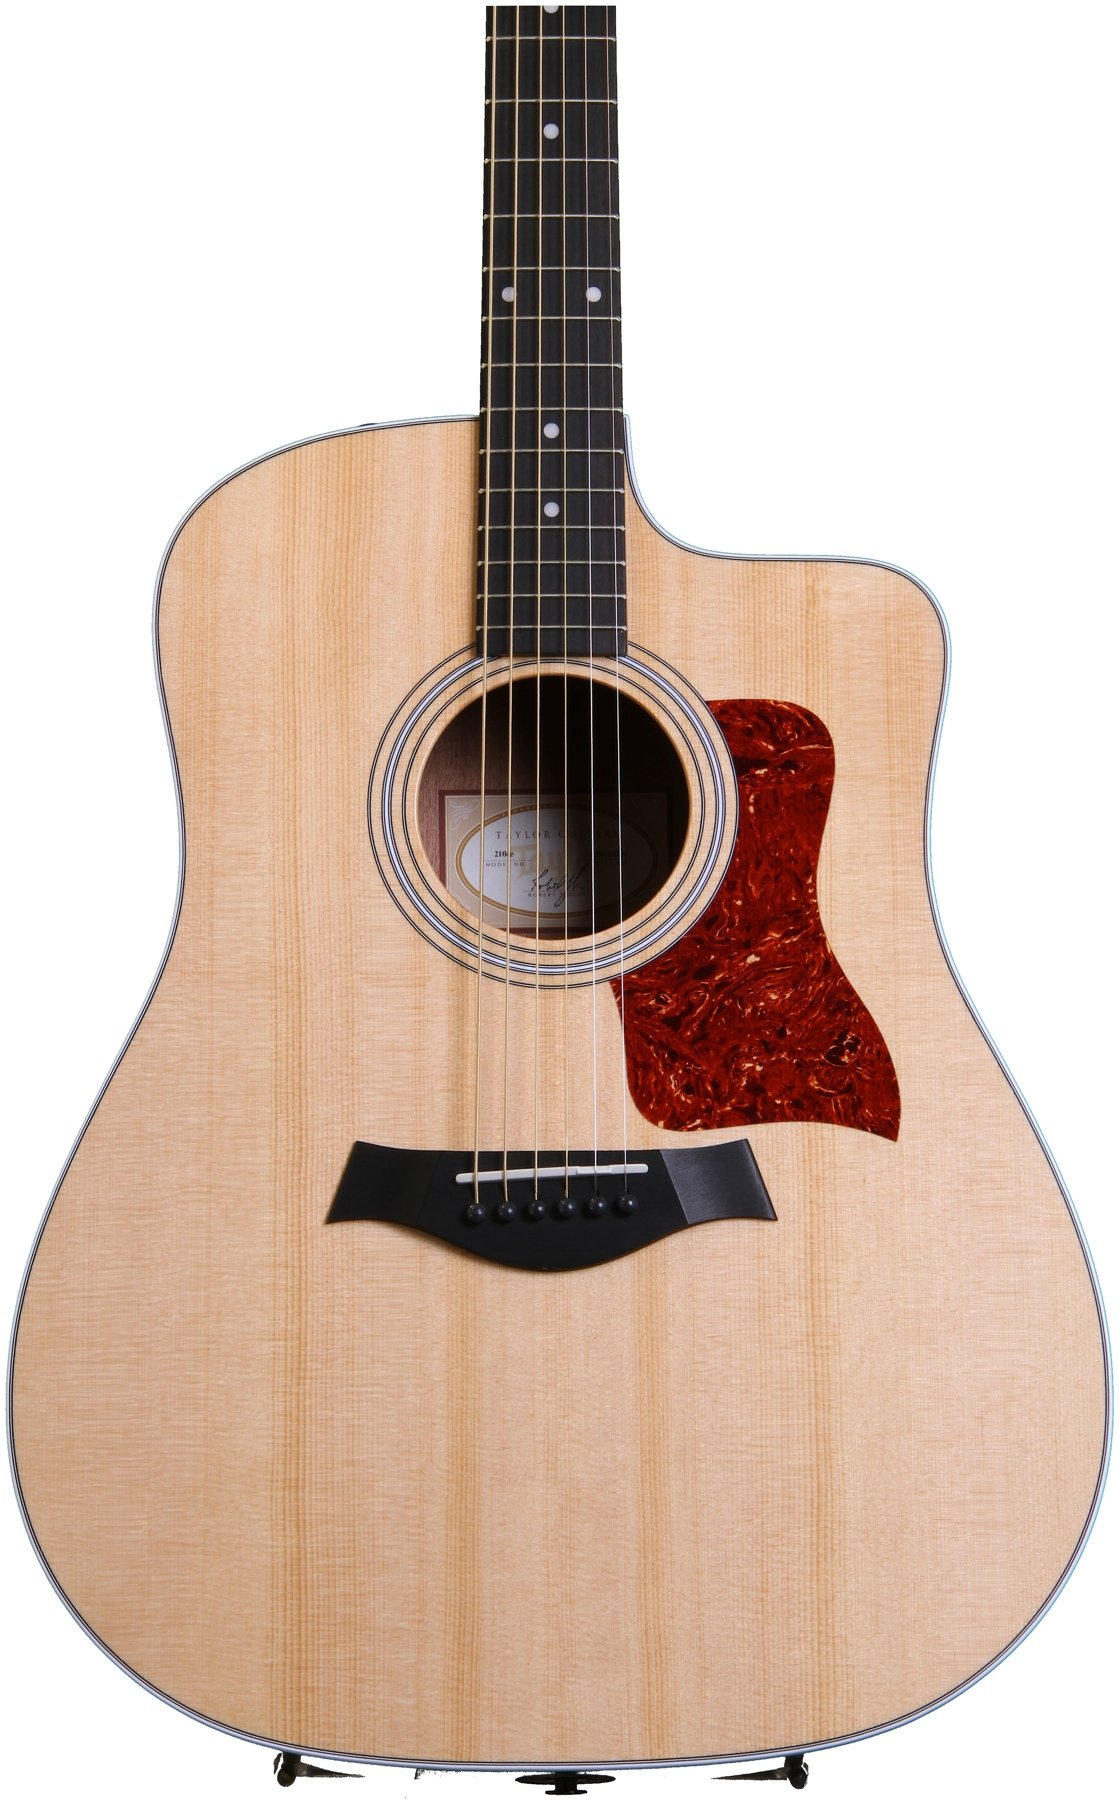 taylor 210ce dreadnought w cutaway and electronics natural  taylor 210ce dreadnought w cutaway and electronics natural image 1